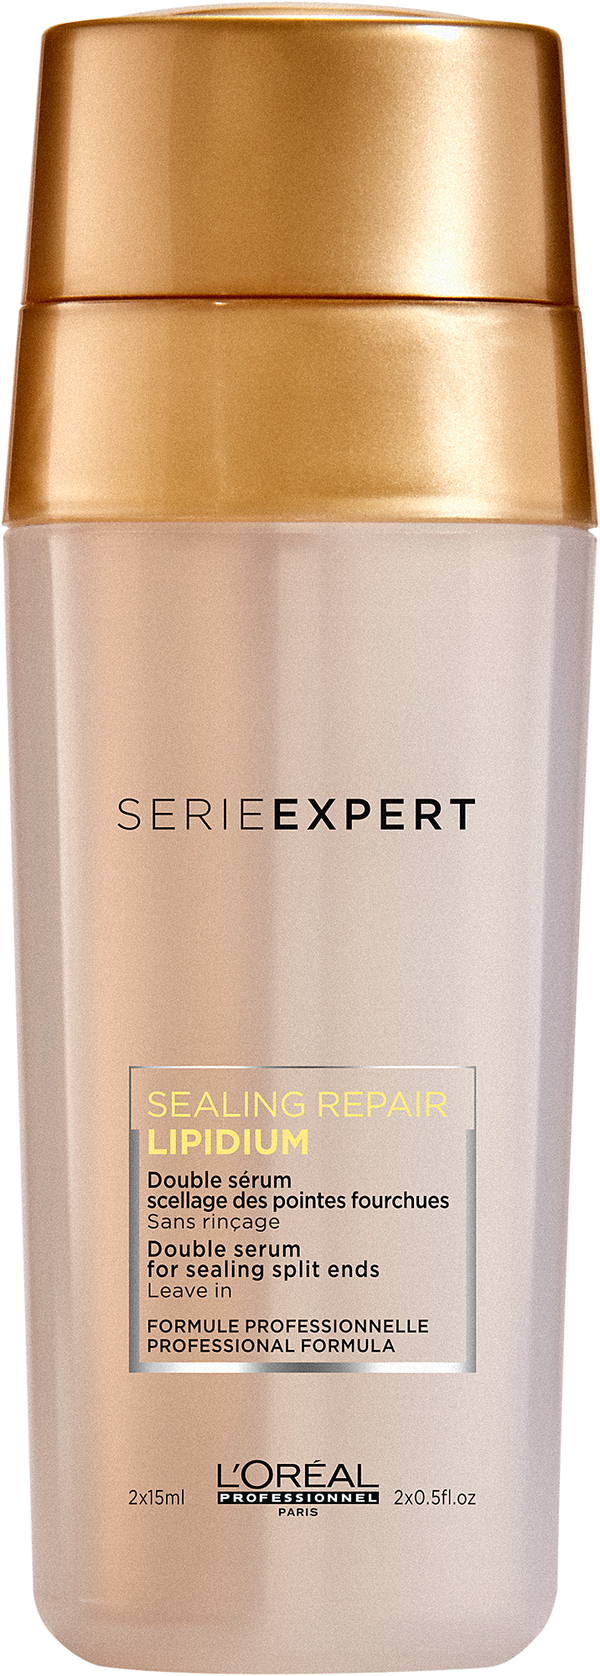 L'Oreal Professionnel Serie Expert Absolut Repair Sealing Repair suero doble